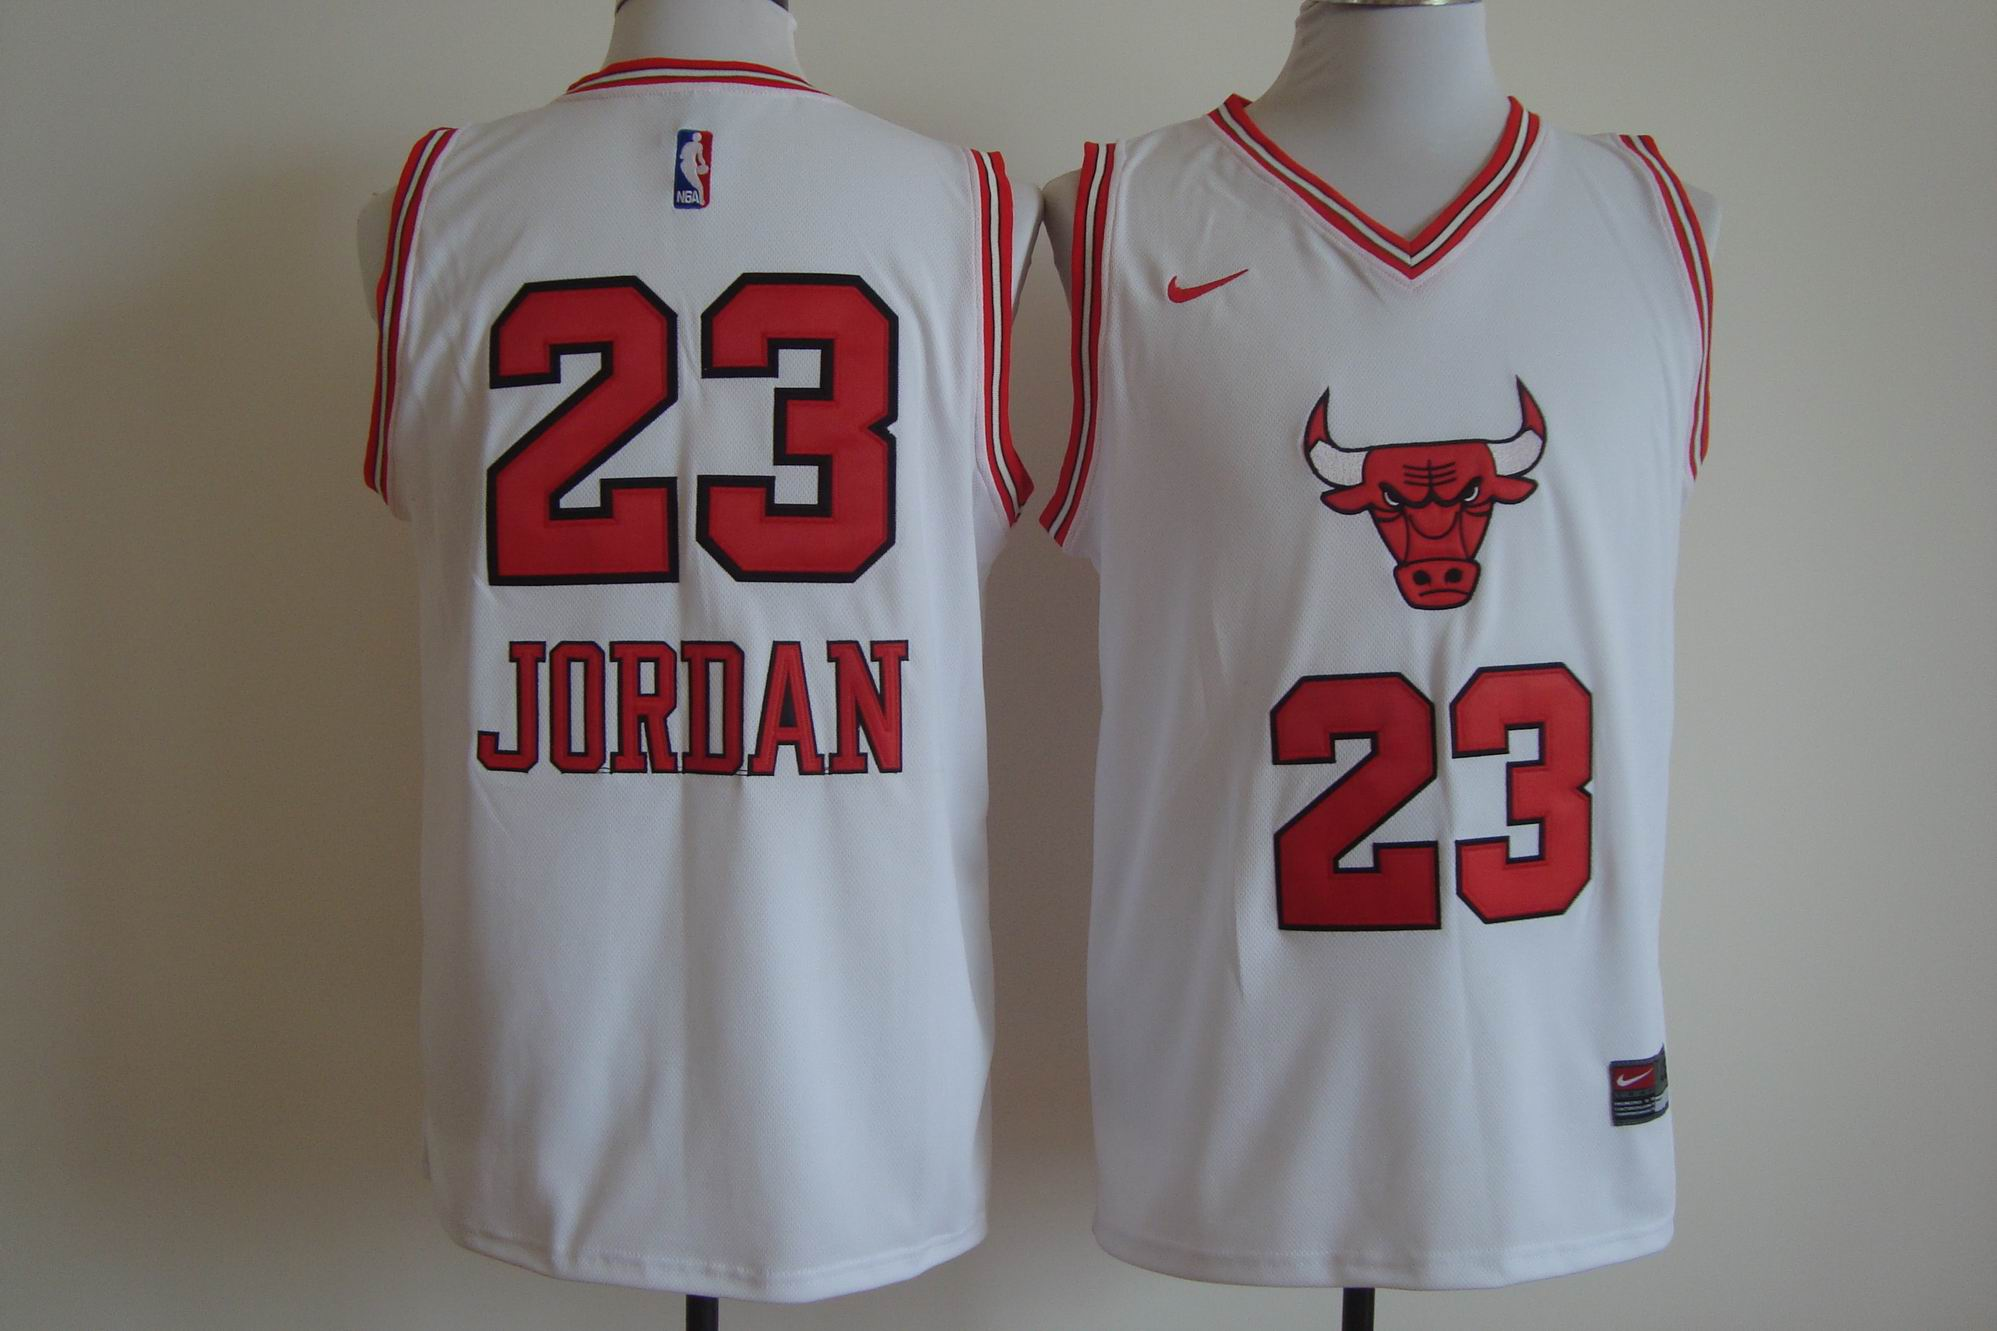 Men's Nike Chicago Bulls #23 Michael Jordan White Bull Head Fashion Stitched NBA Jersey